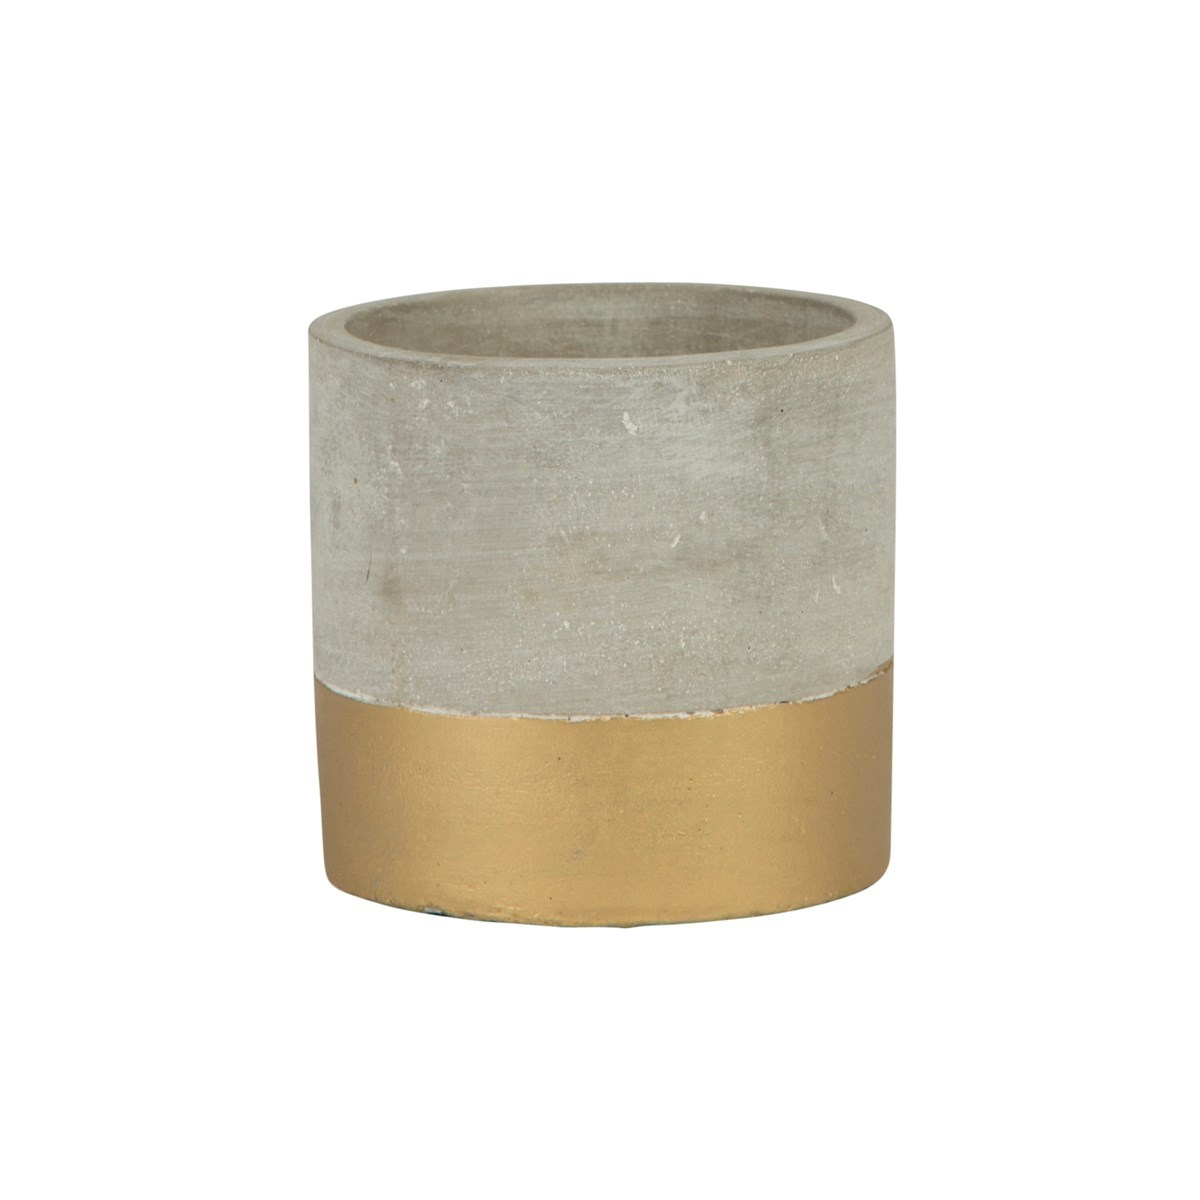 Tuva Gold Dip Cement Mini Planter image